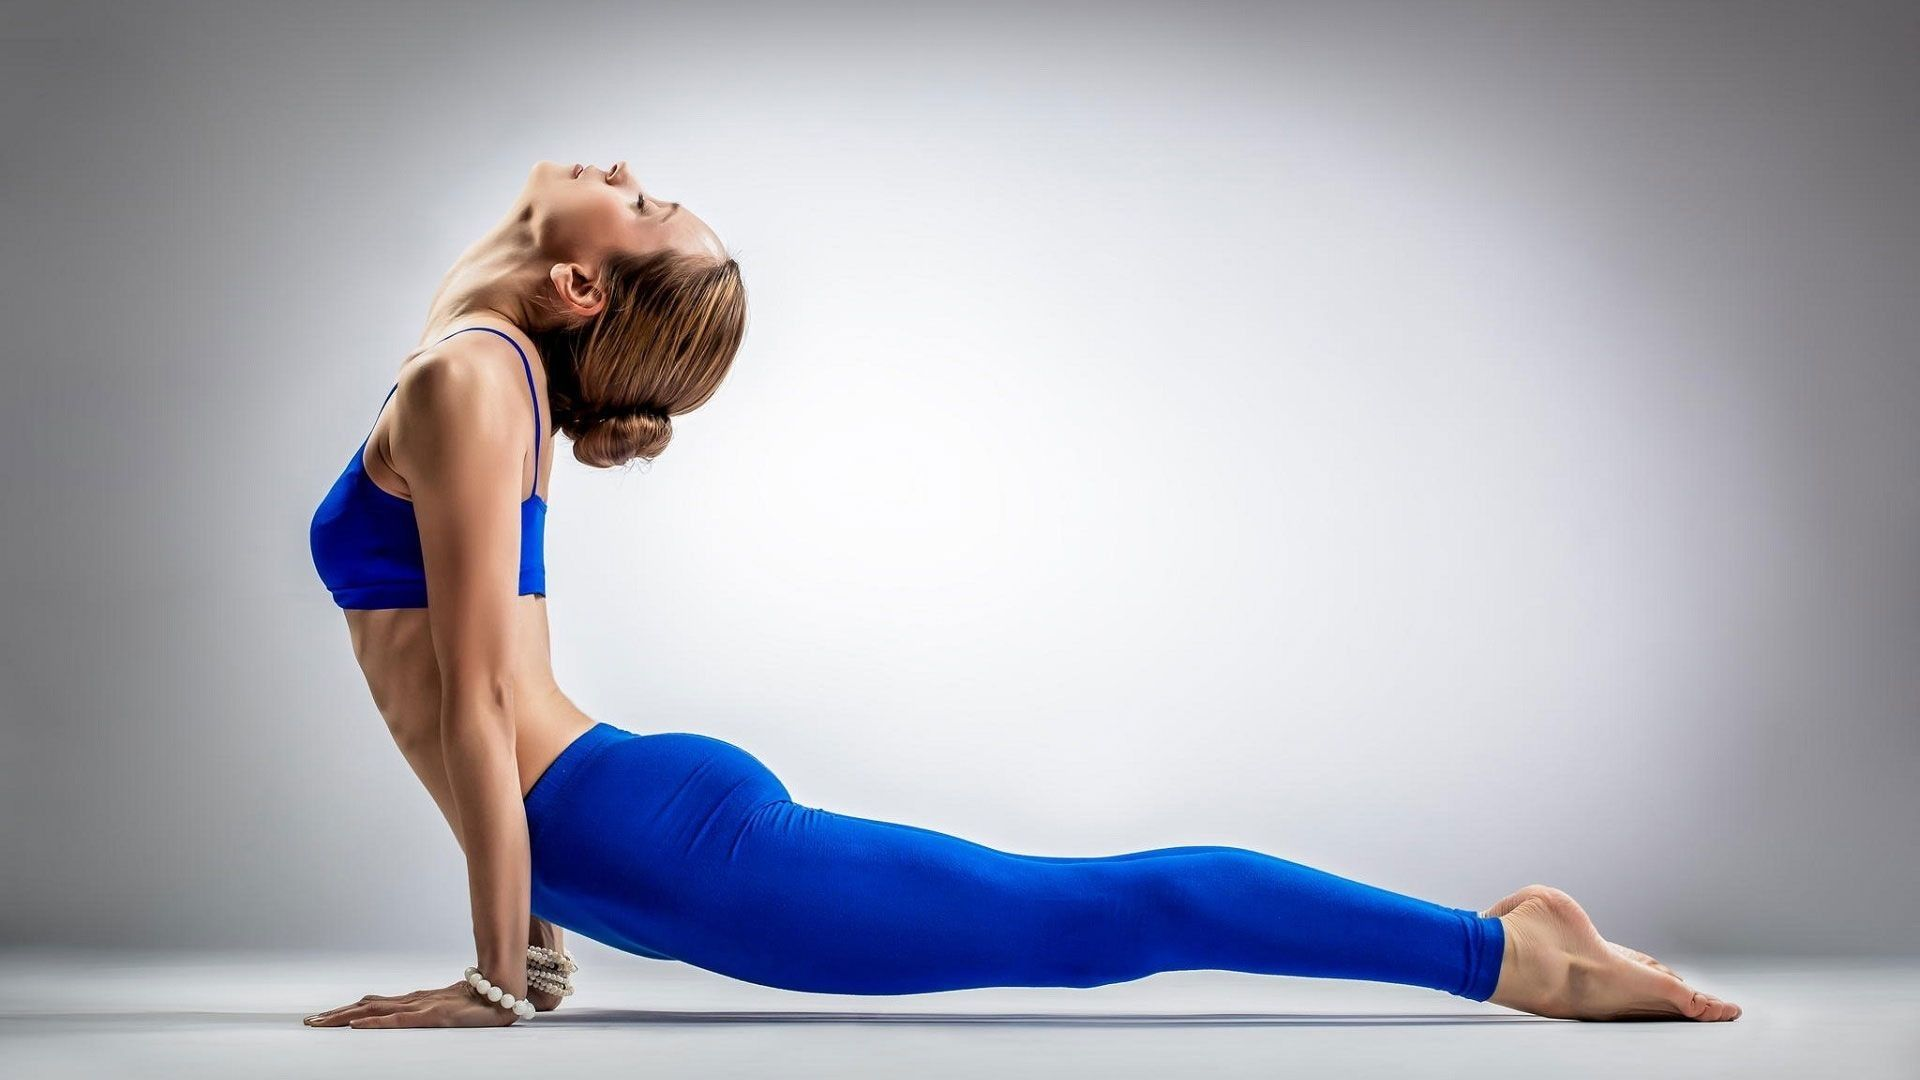 1920x1080 56+ Yoga Background Wallpapers on WallpaperPlay